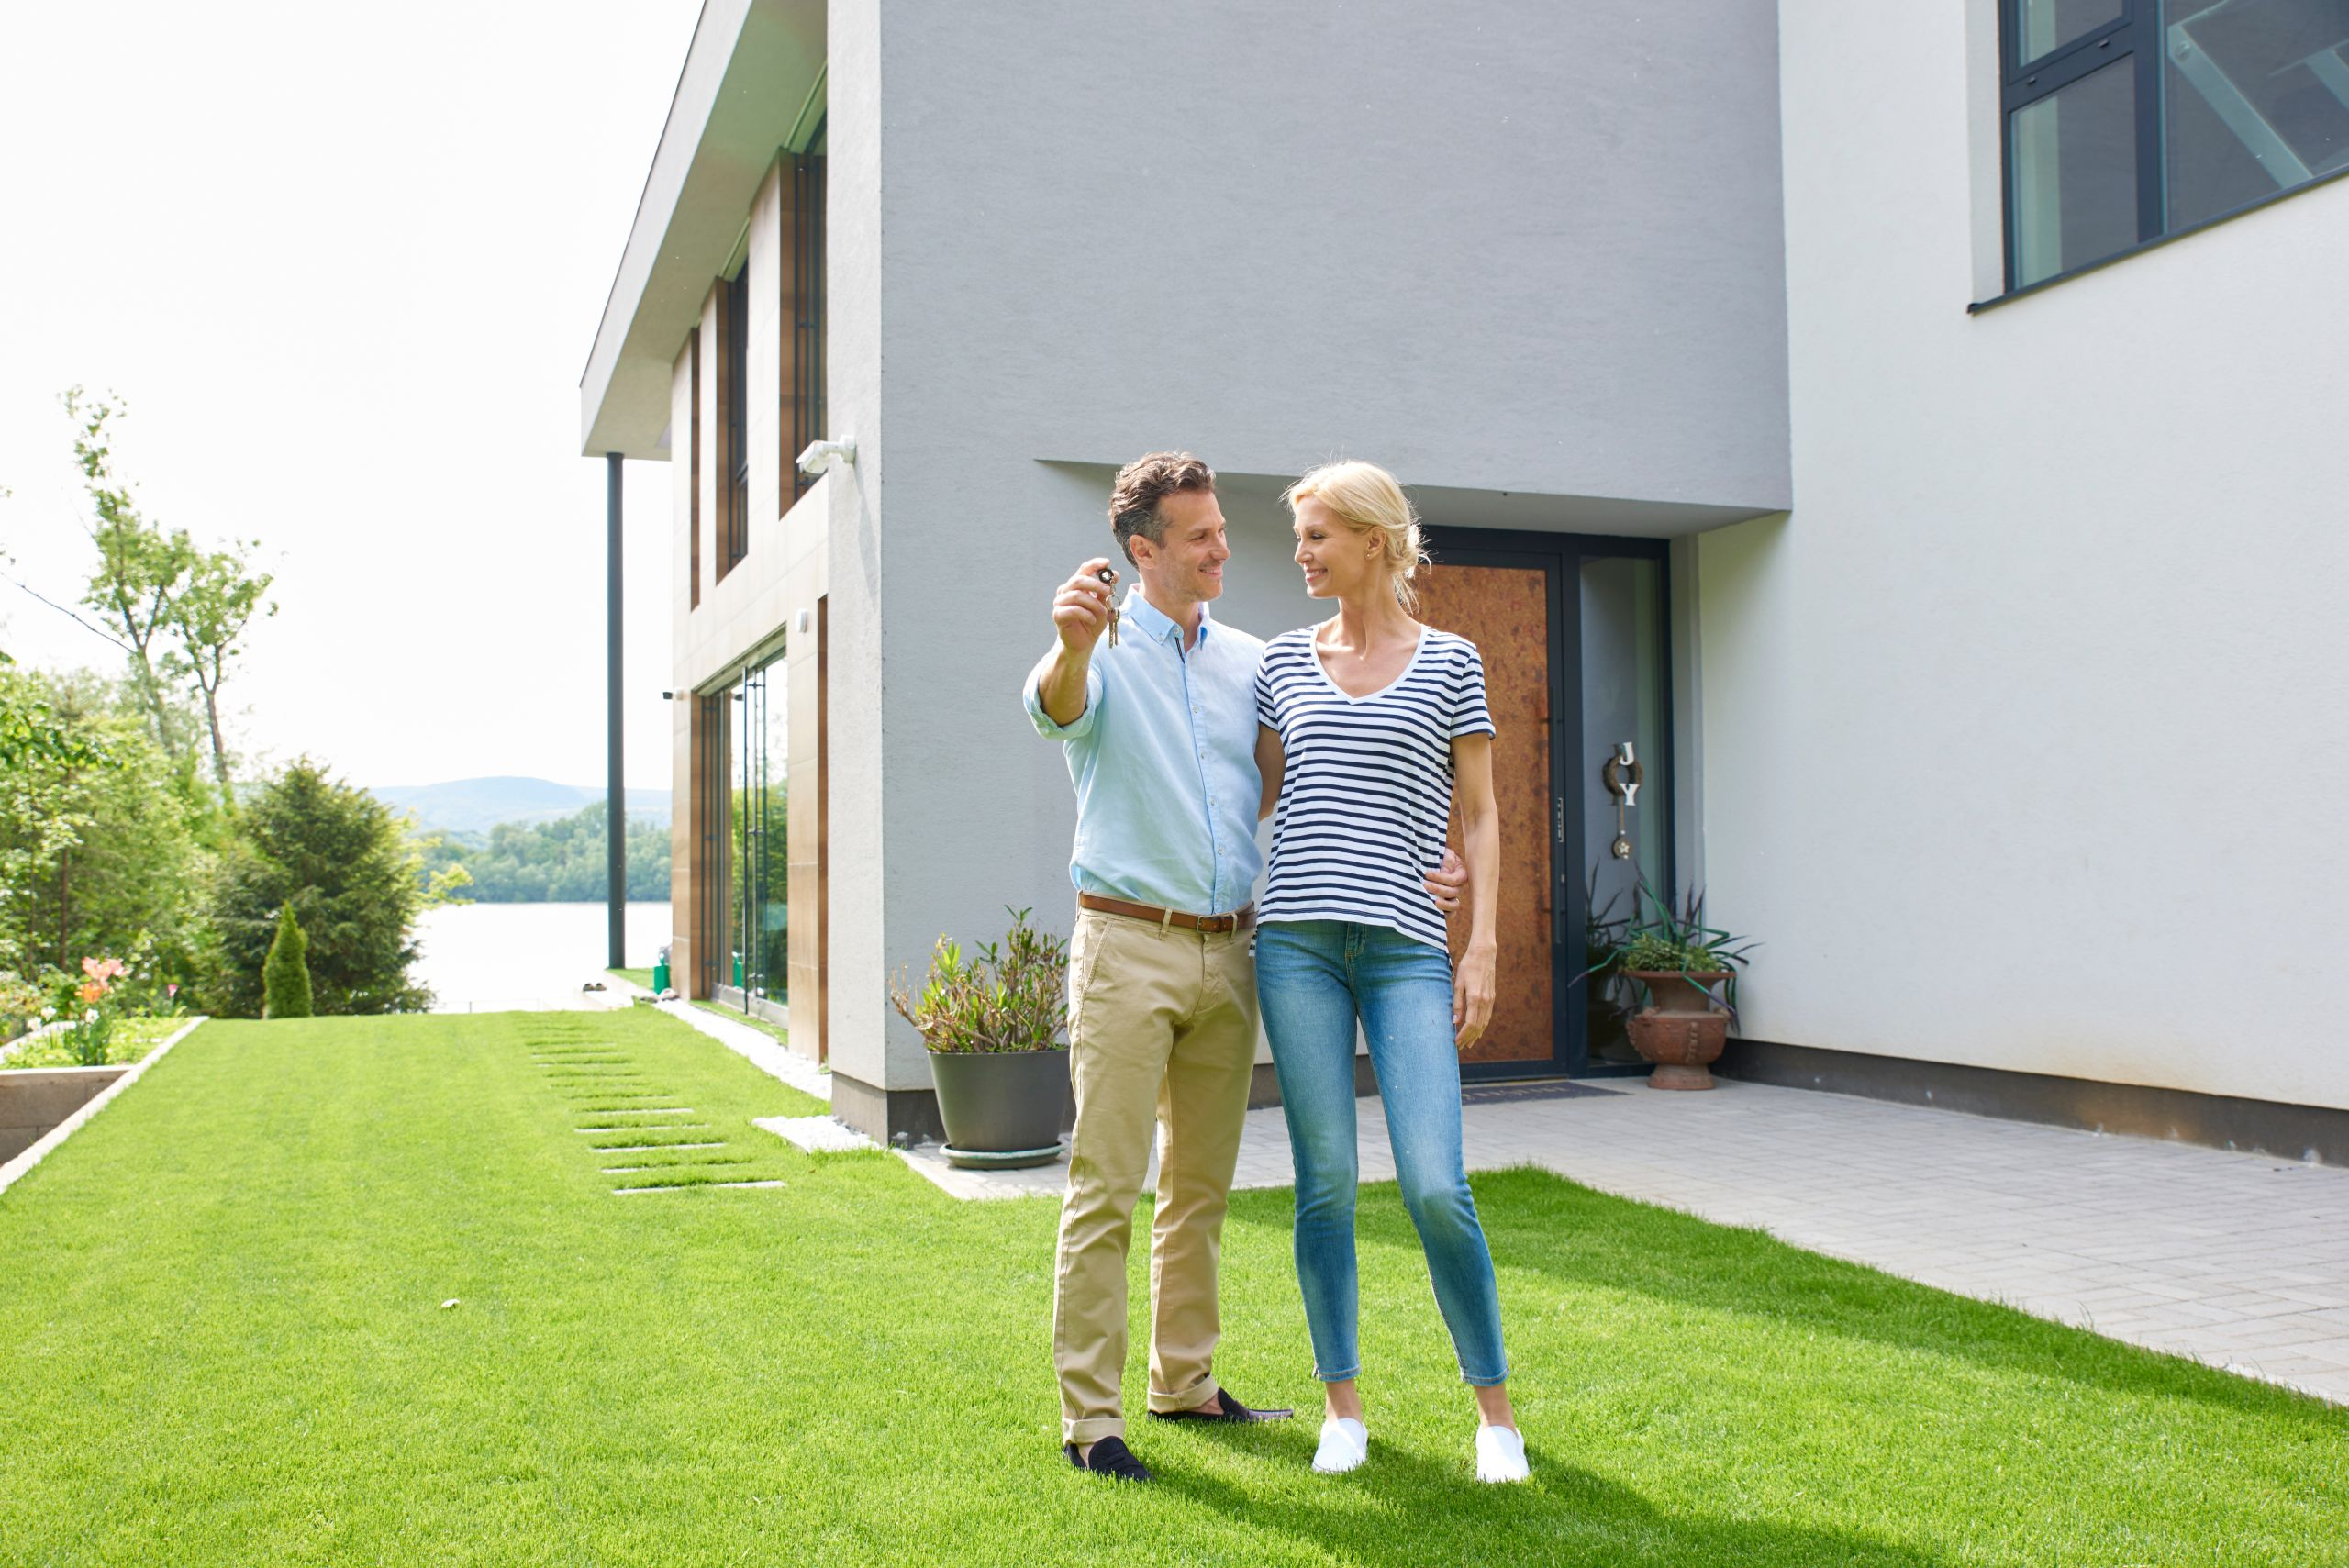 Let's find your dream home!